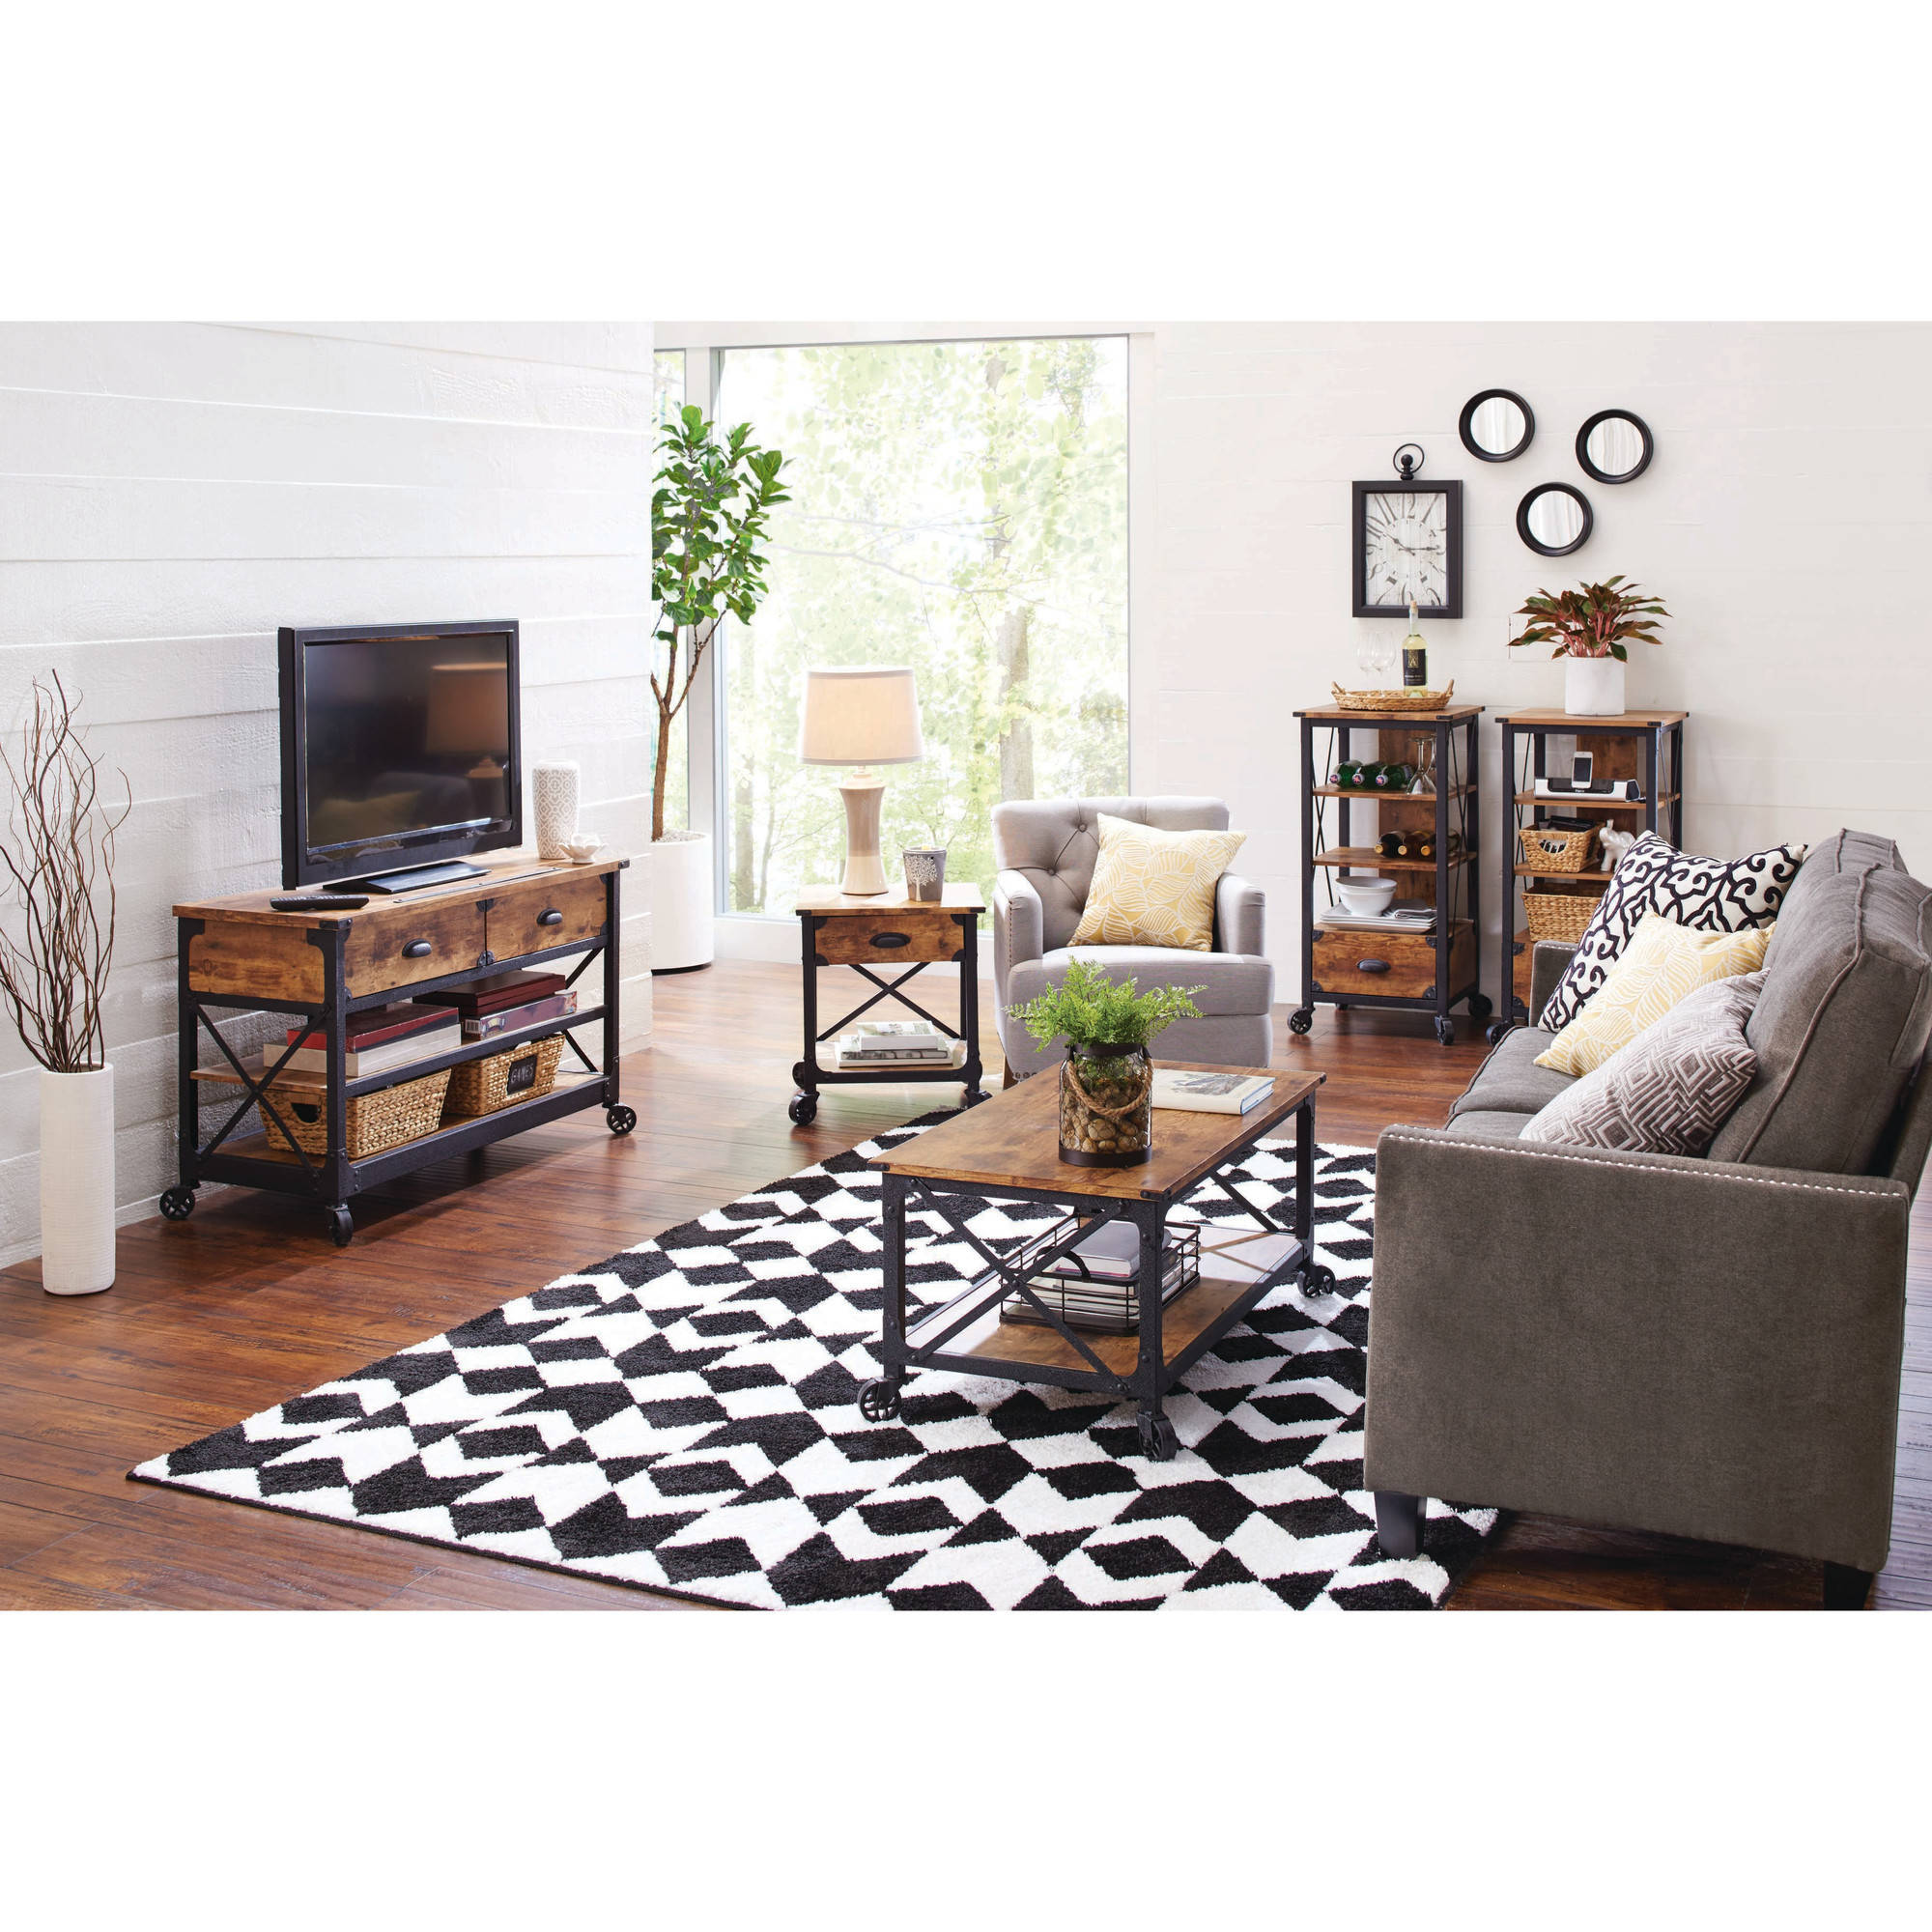 Better Homes and Gardens Rustic Country TV Stand Home Entertainment Set